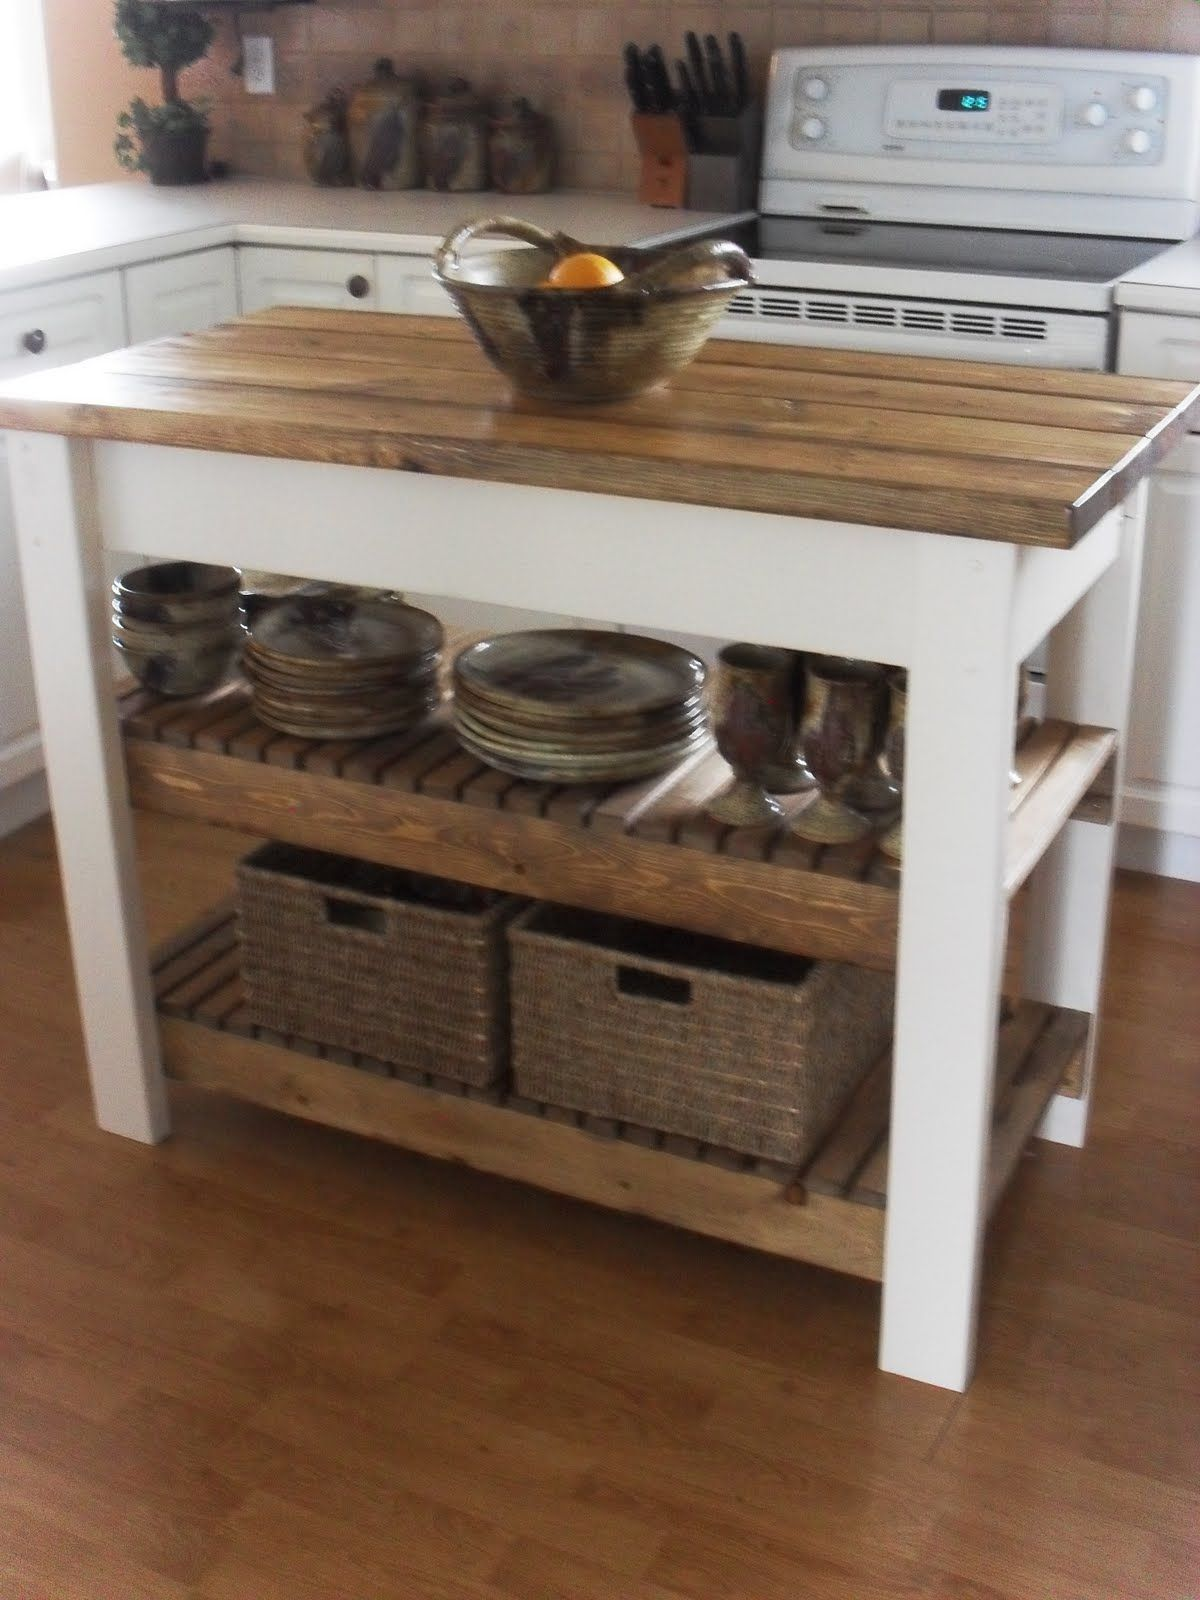 Diy Ikea Kücheninsel 10 Diy Easy And Little Project For Your Kitchen 10 Kitchen Reno